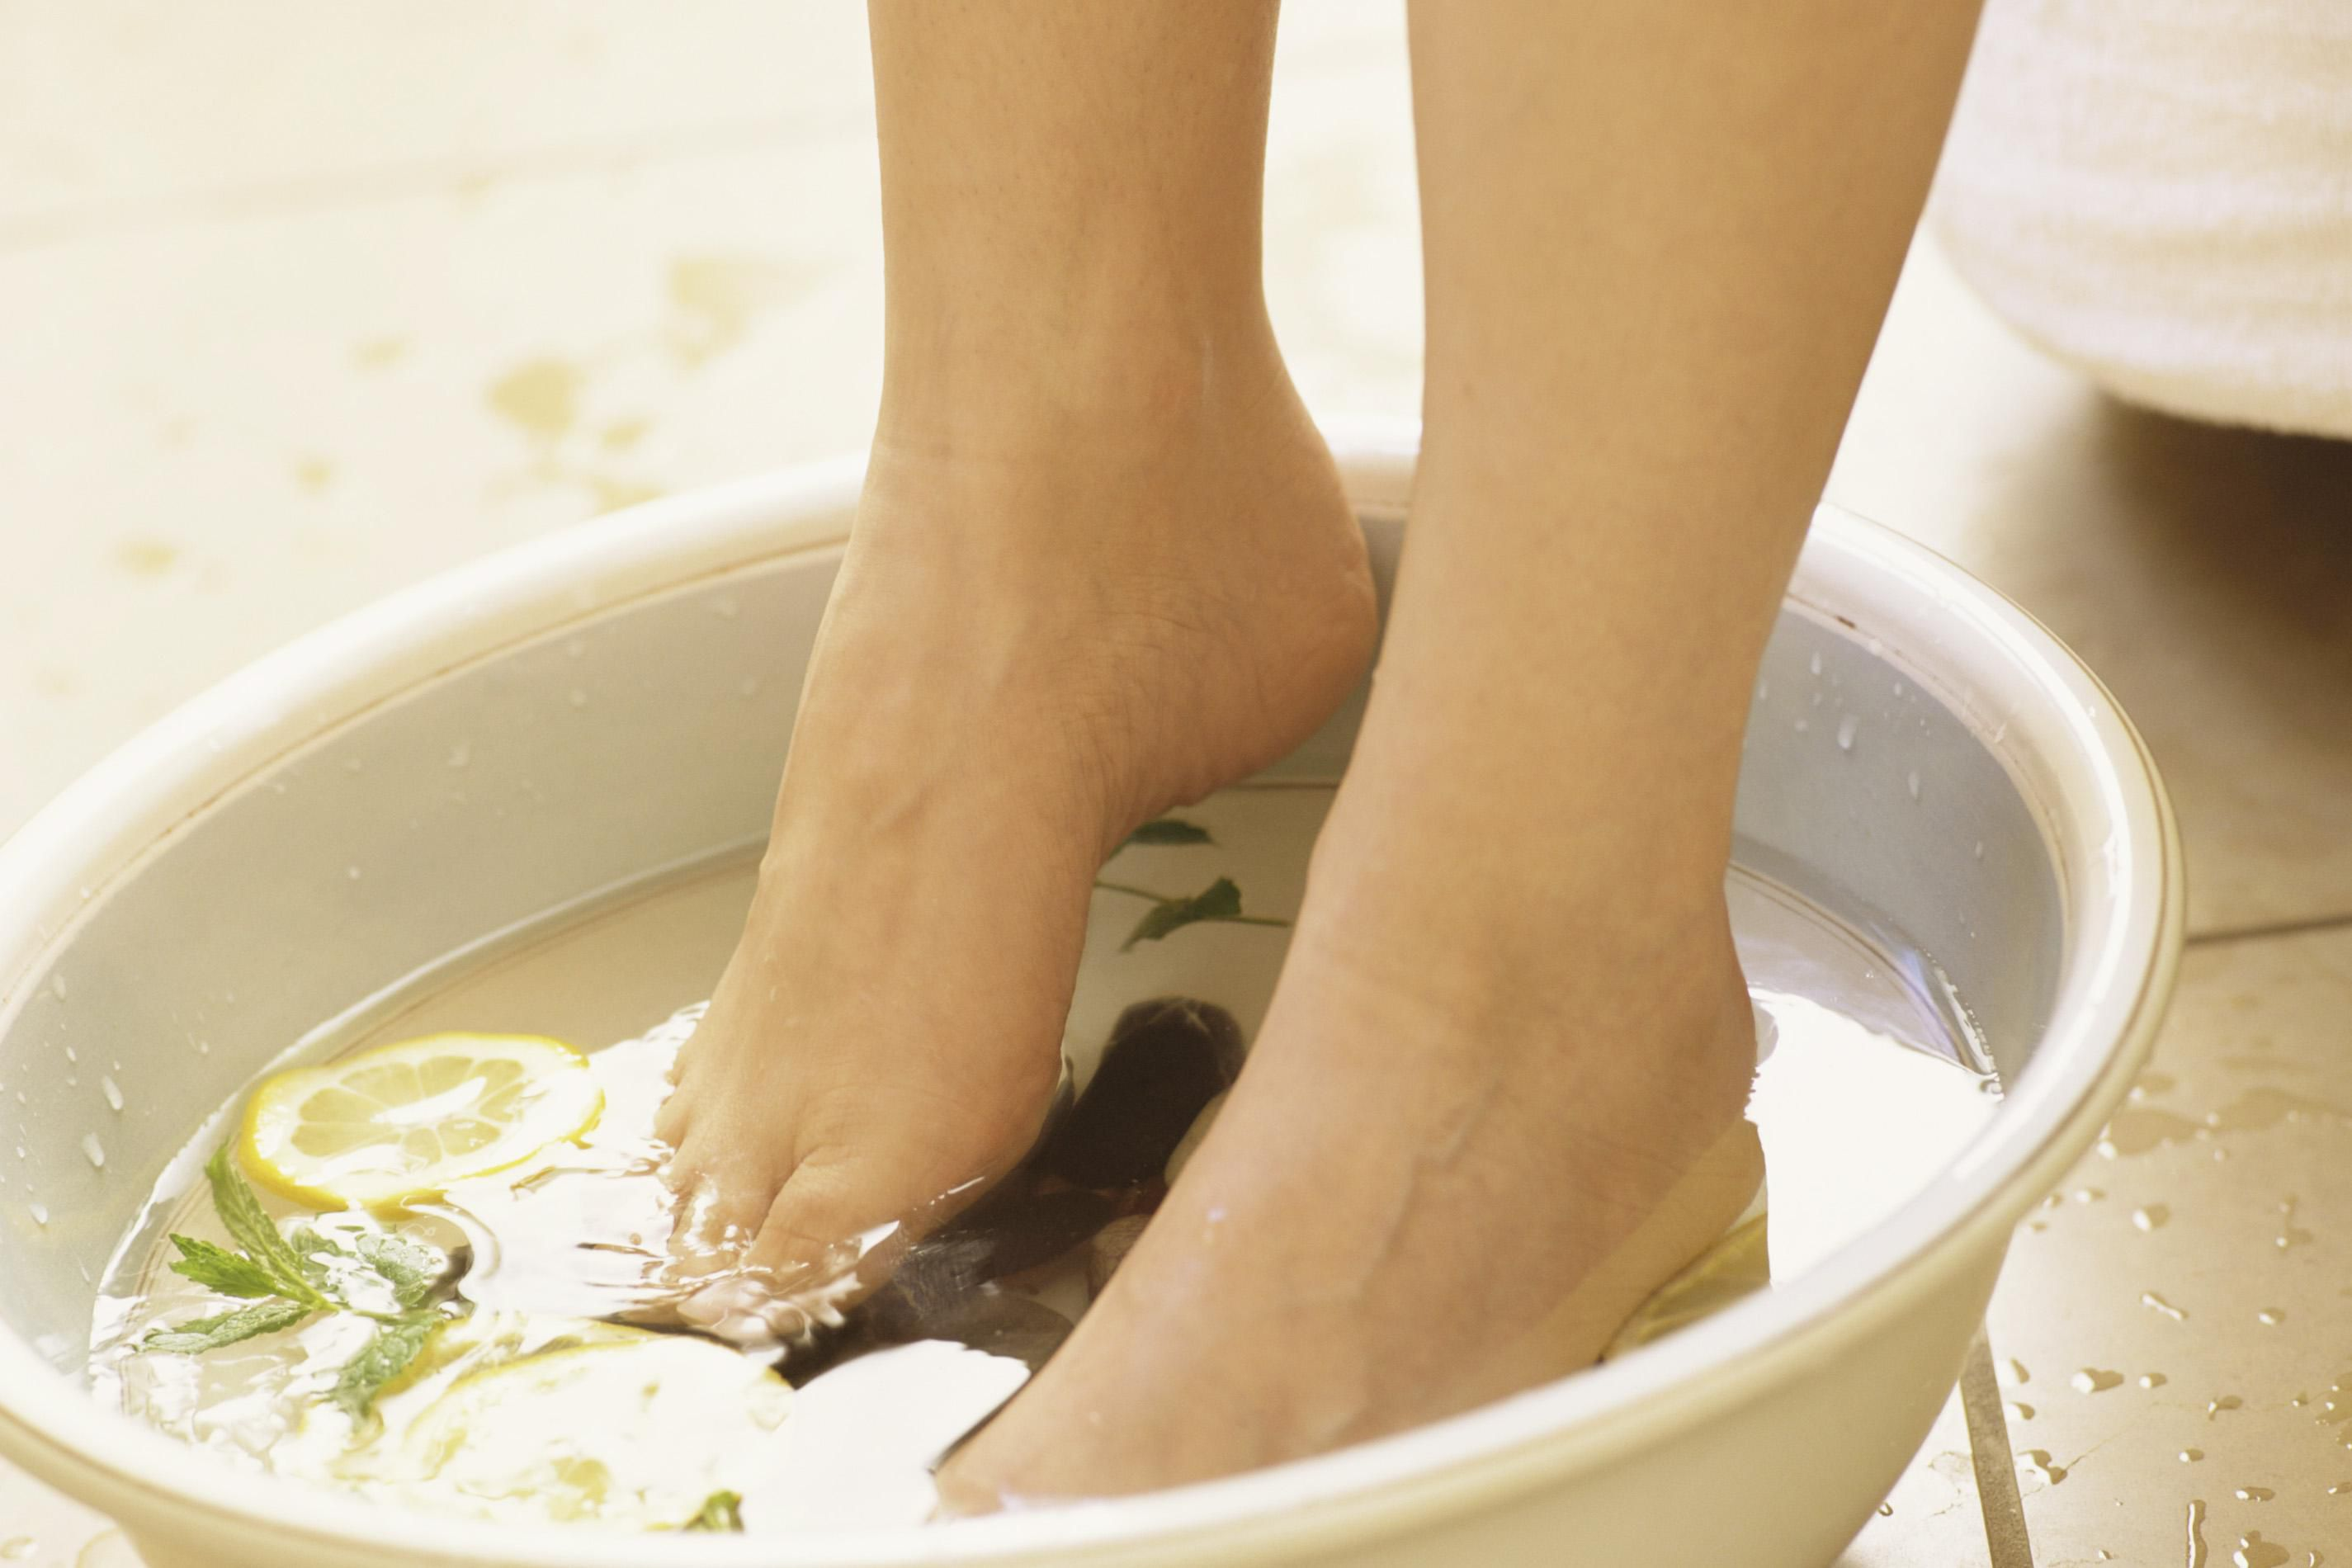 Self-Care Tips to Soothe Aching Feet at Home